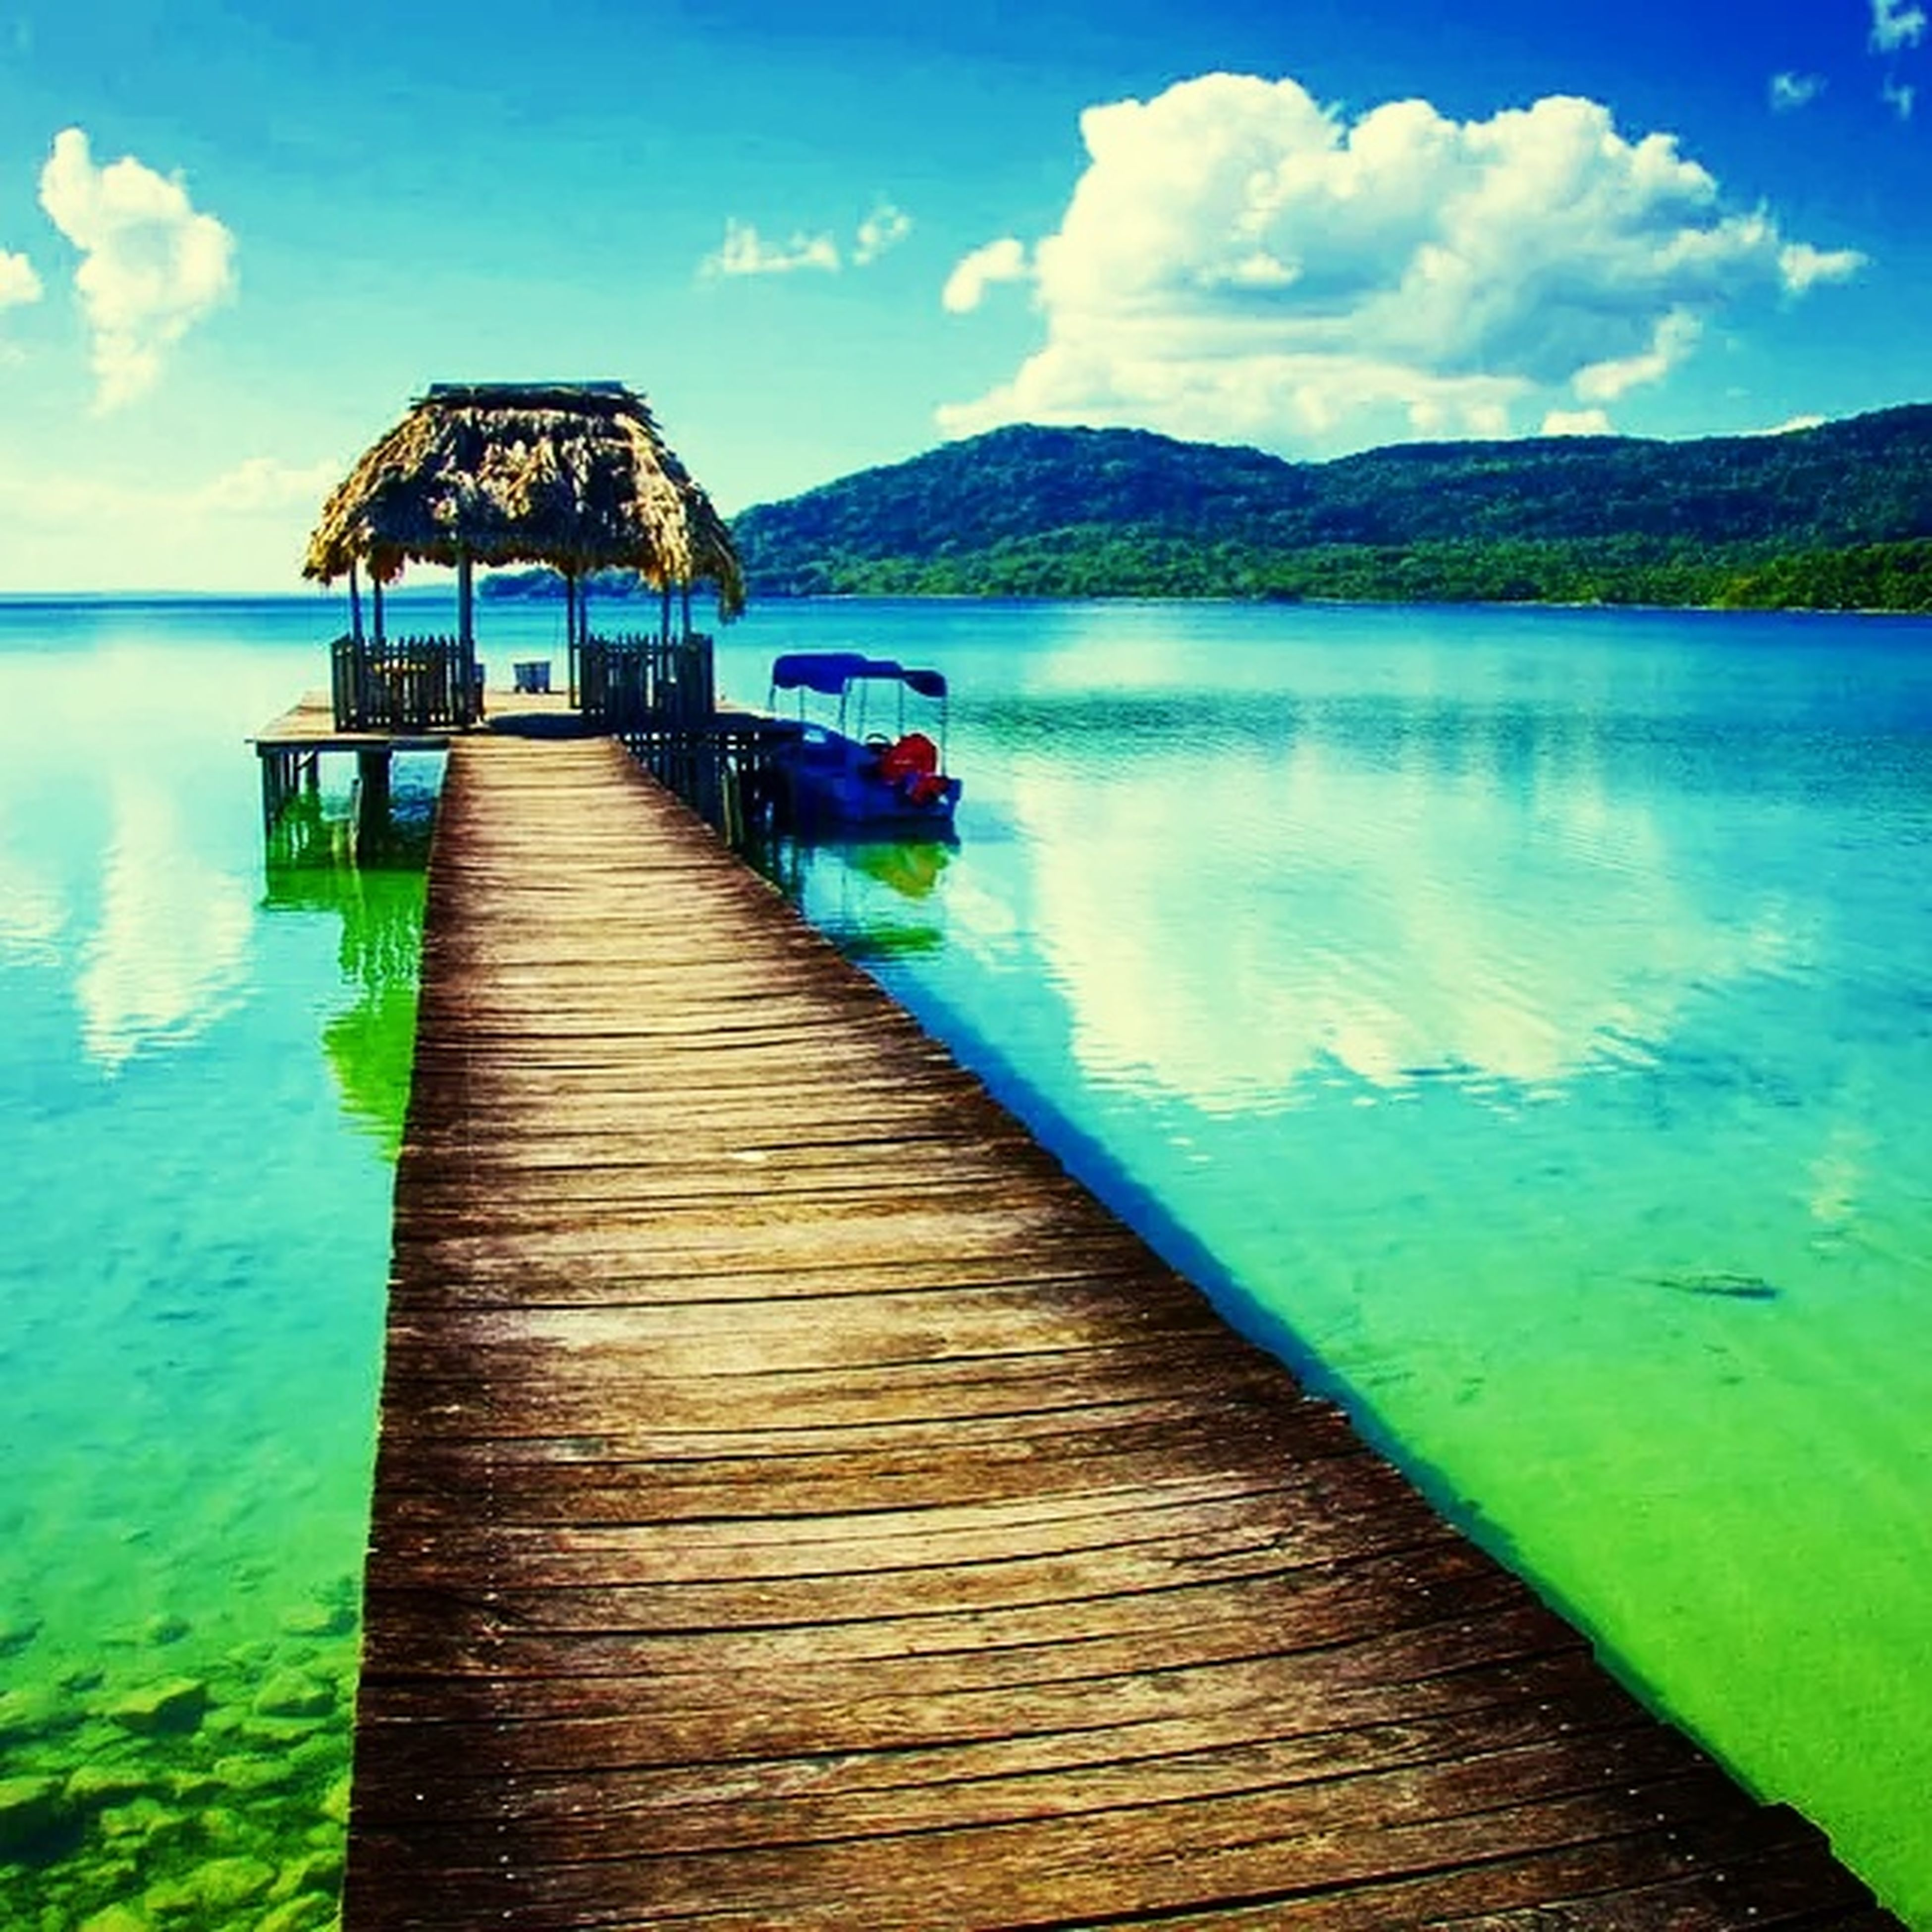 water, sky, wood - material, tranquility, pier, tranquil scene, blue, lake, sea, scenics, cloud - sky, mountain, nature, built structure, cloud, beauty in nature, jetty, wood, boardwalk, idyllic